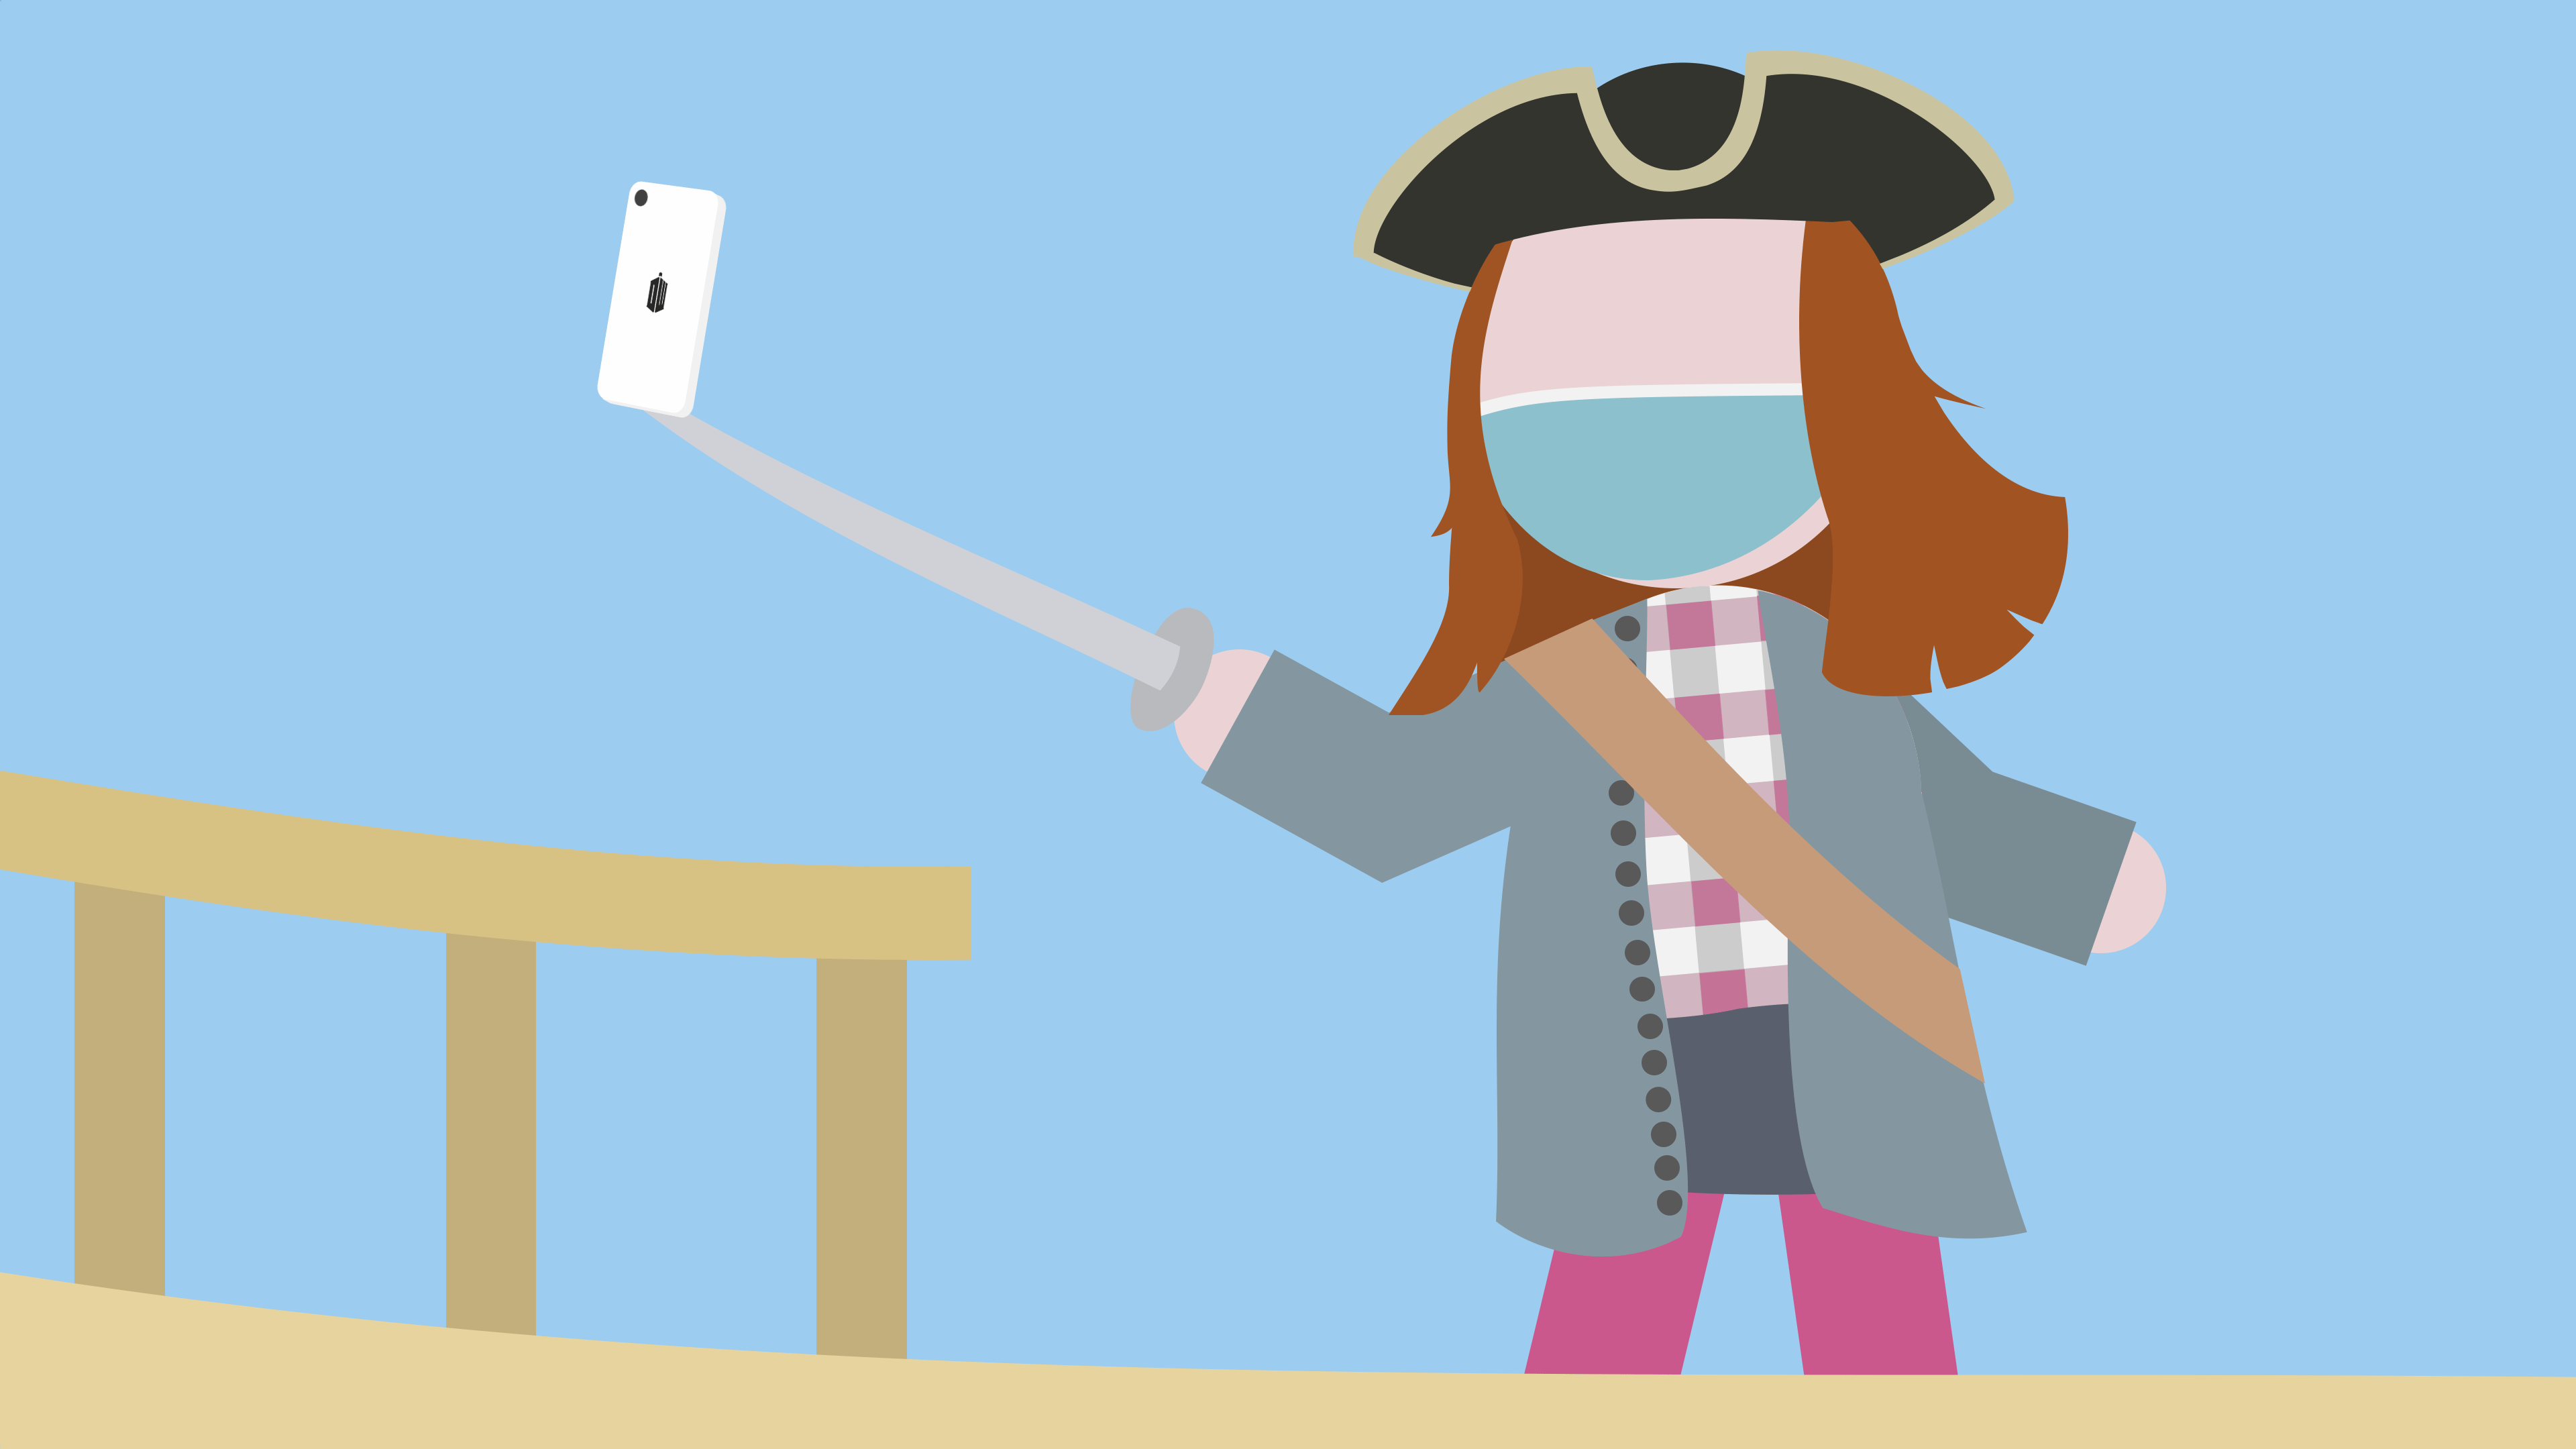 Face-masked pirate with a selfie stick boards a ship